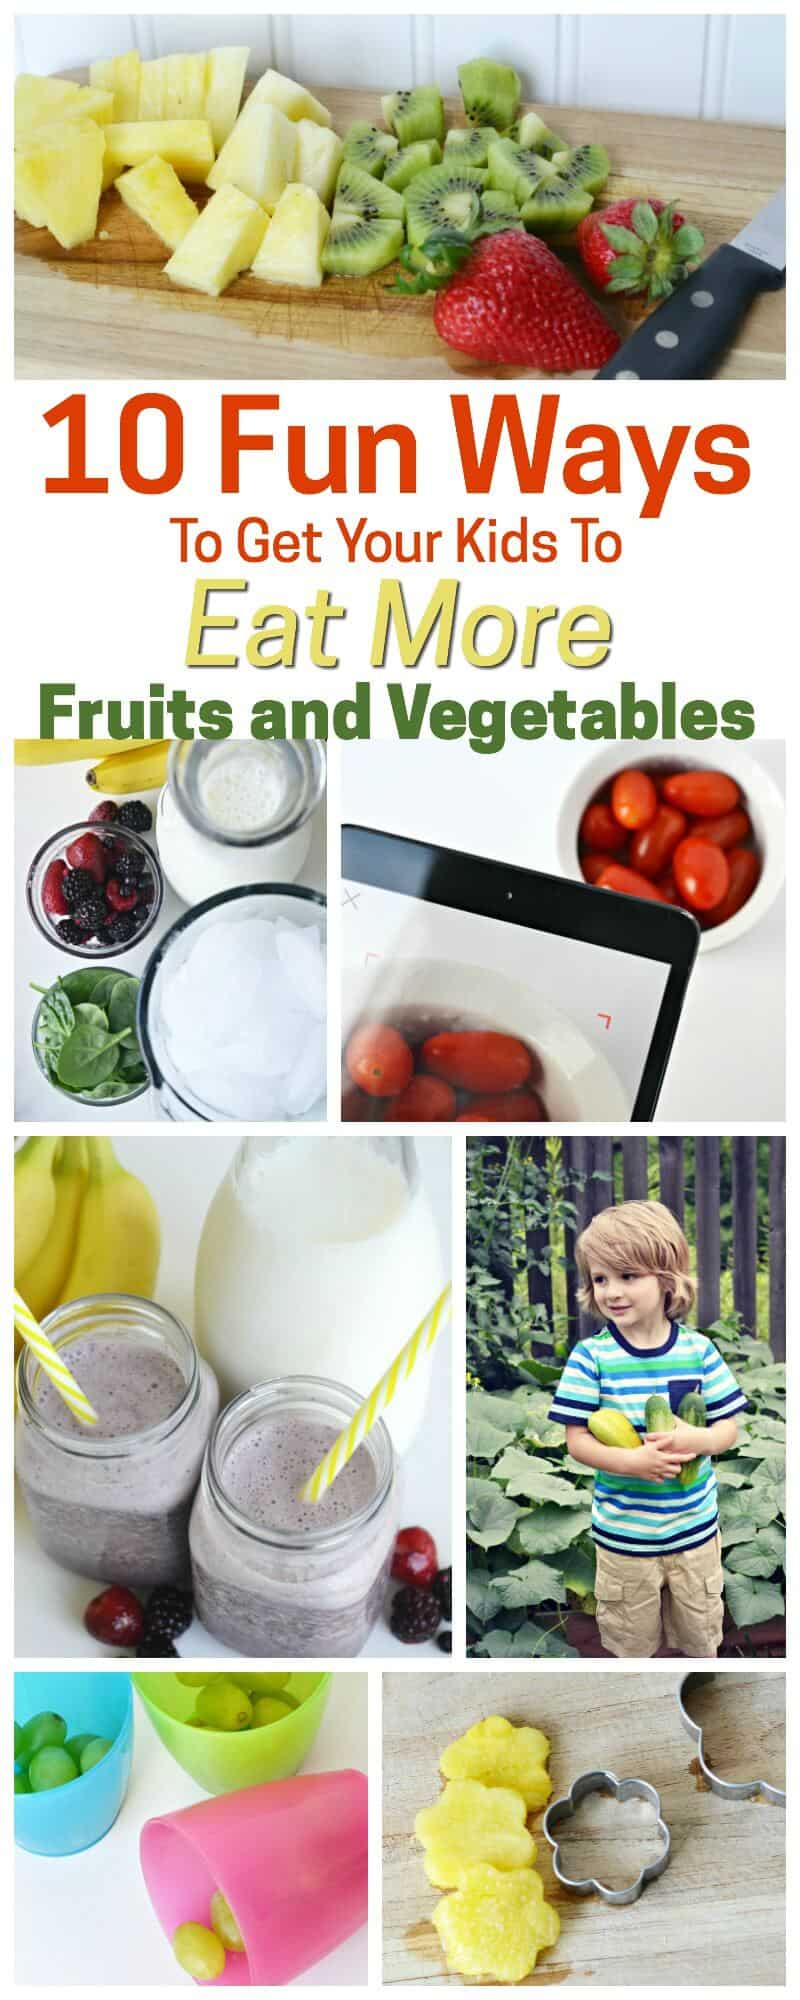 Fun Ways to Get Your Kids to Eat More Fruits and Vegetables